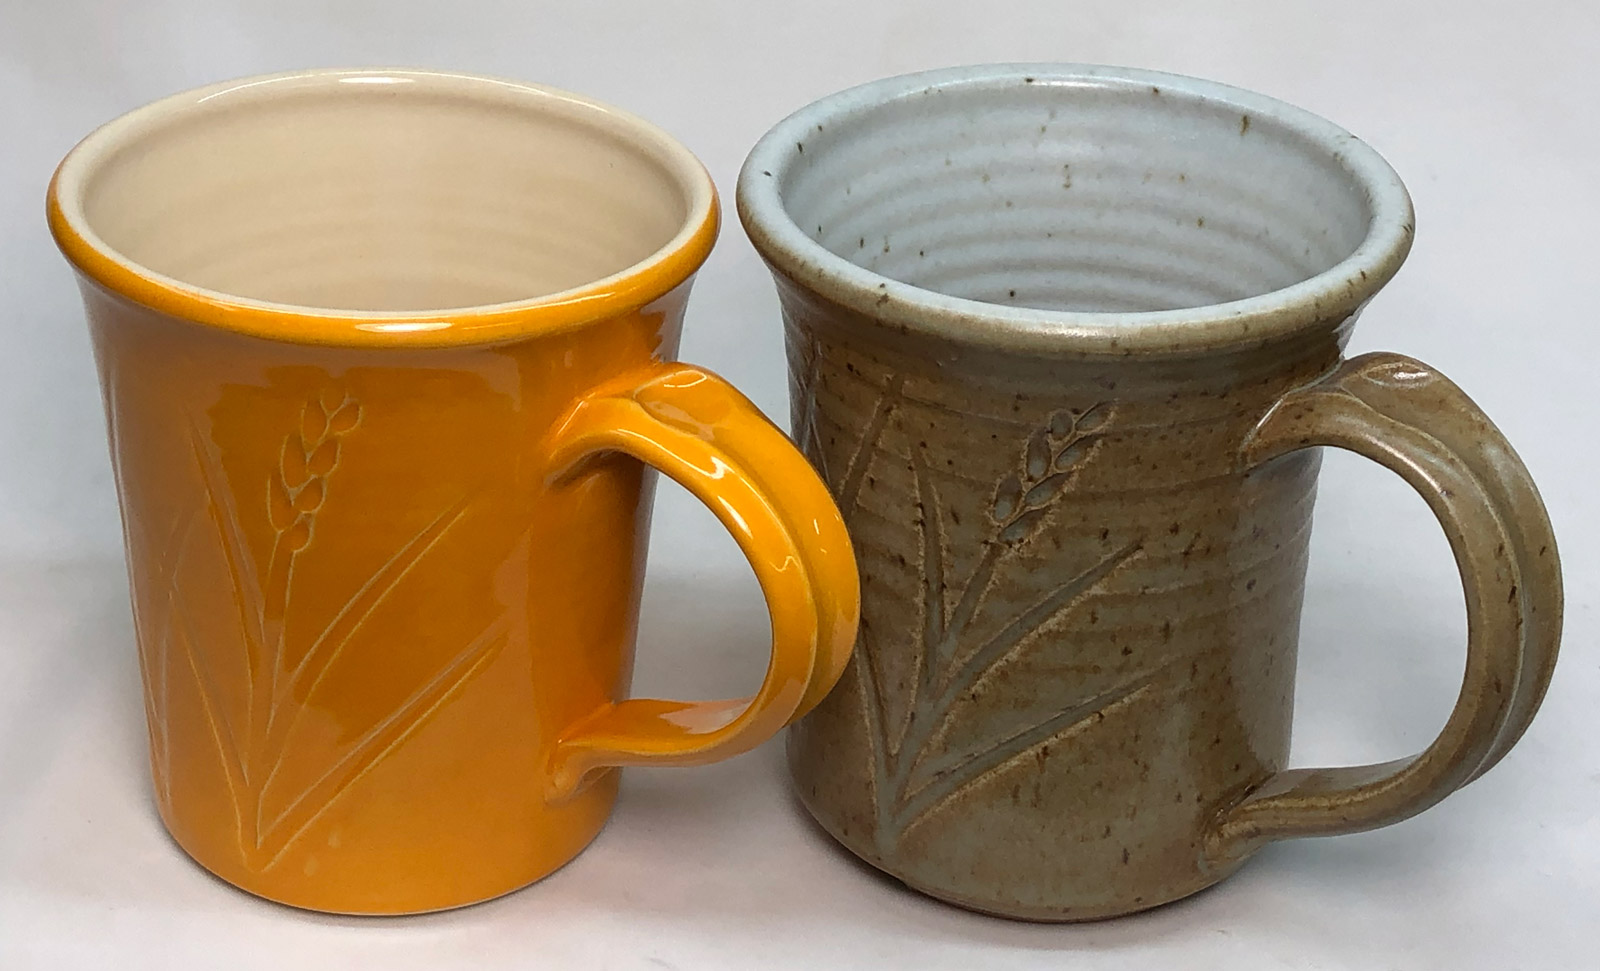 Which is better for functional ware? Cone 04? Cone 10 reduction?